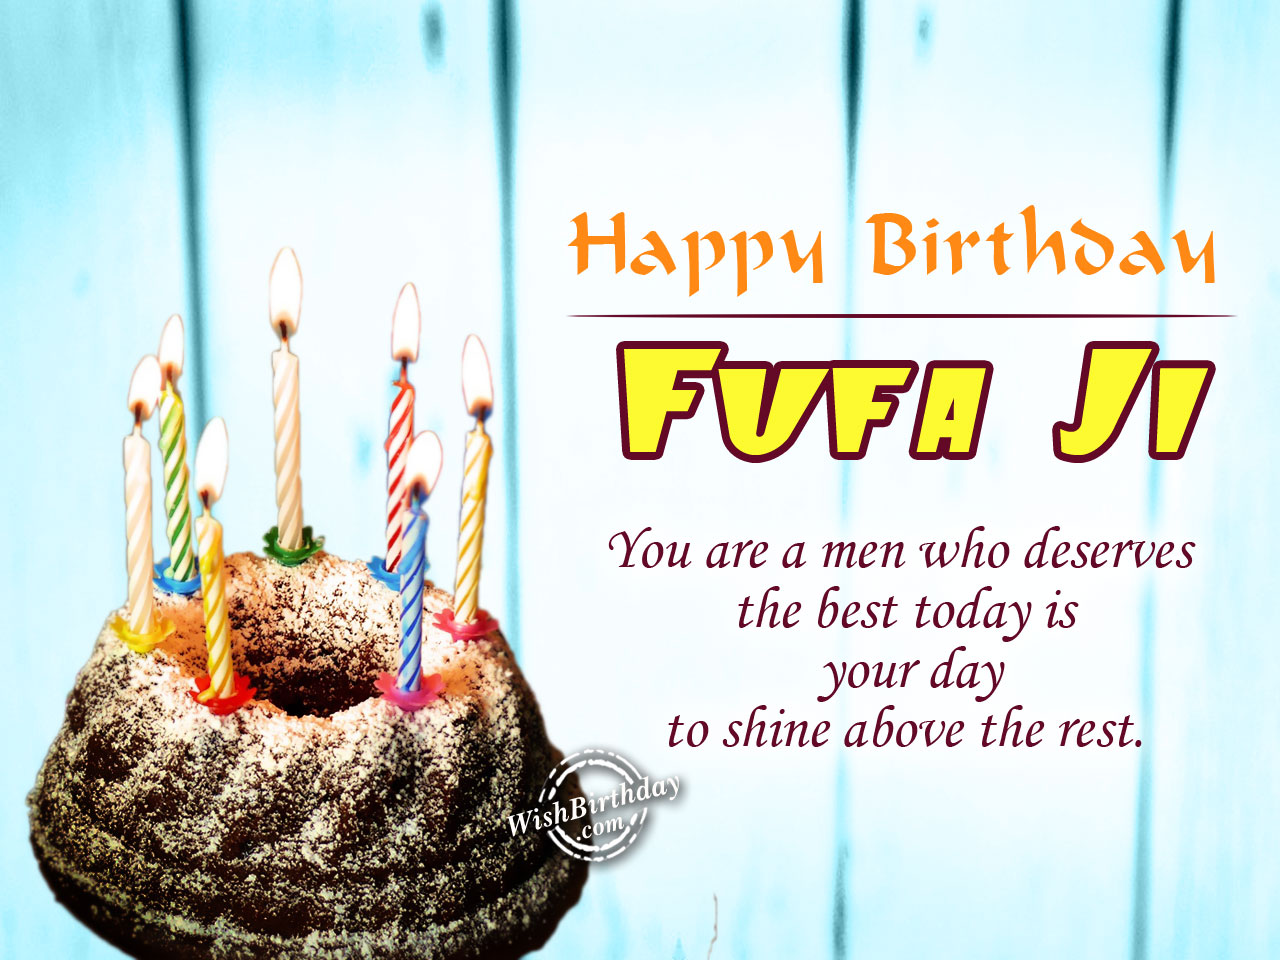 Birthday wishes for fufar ji birthday images pictures you are a men who deserves the best fufa ji kristyandbryce Gallery